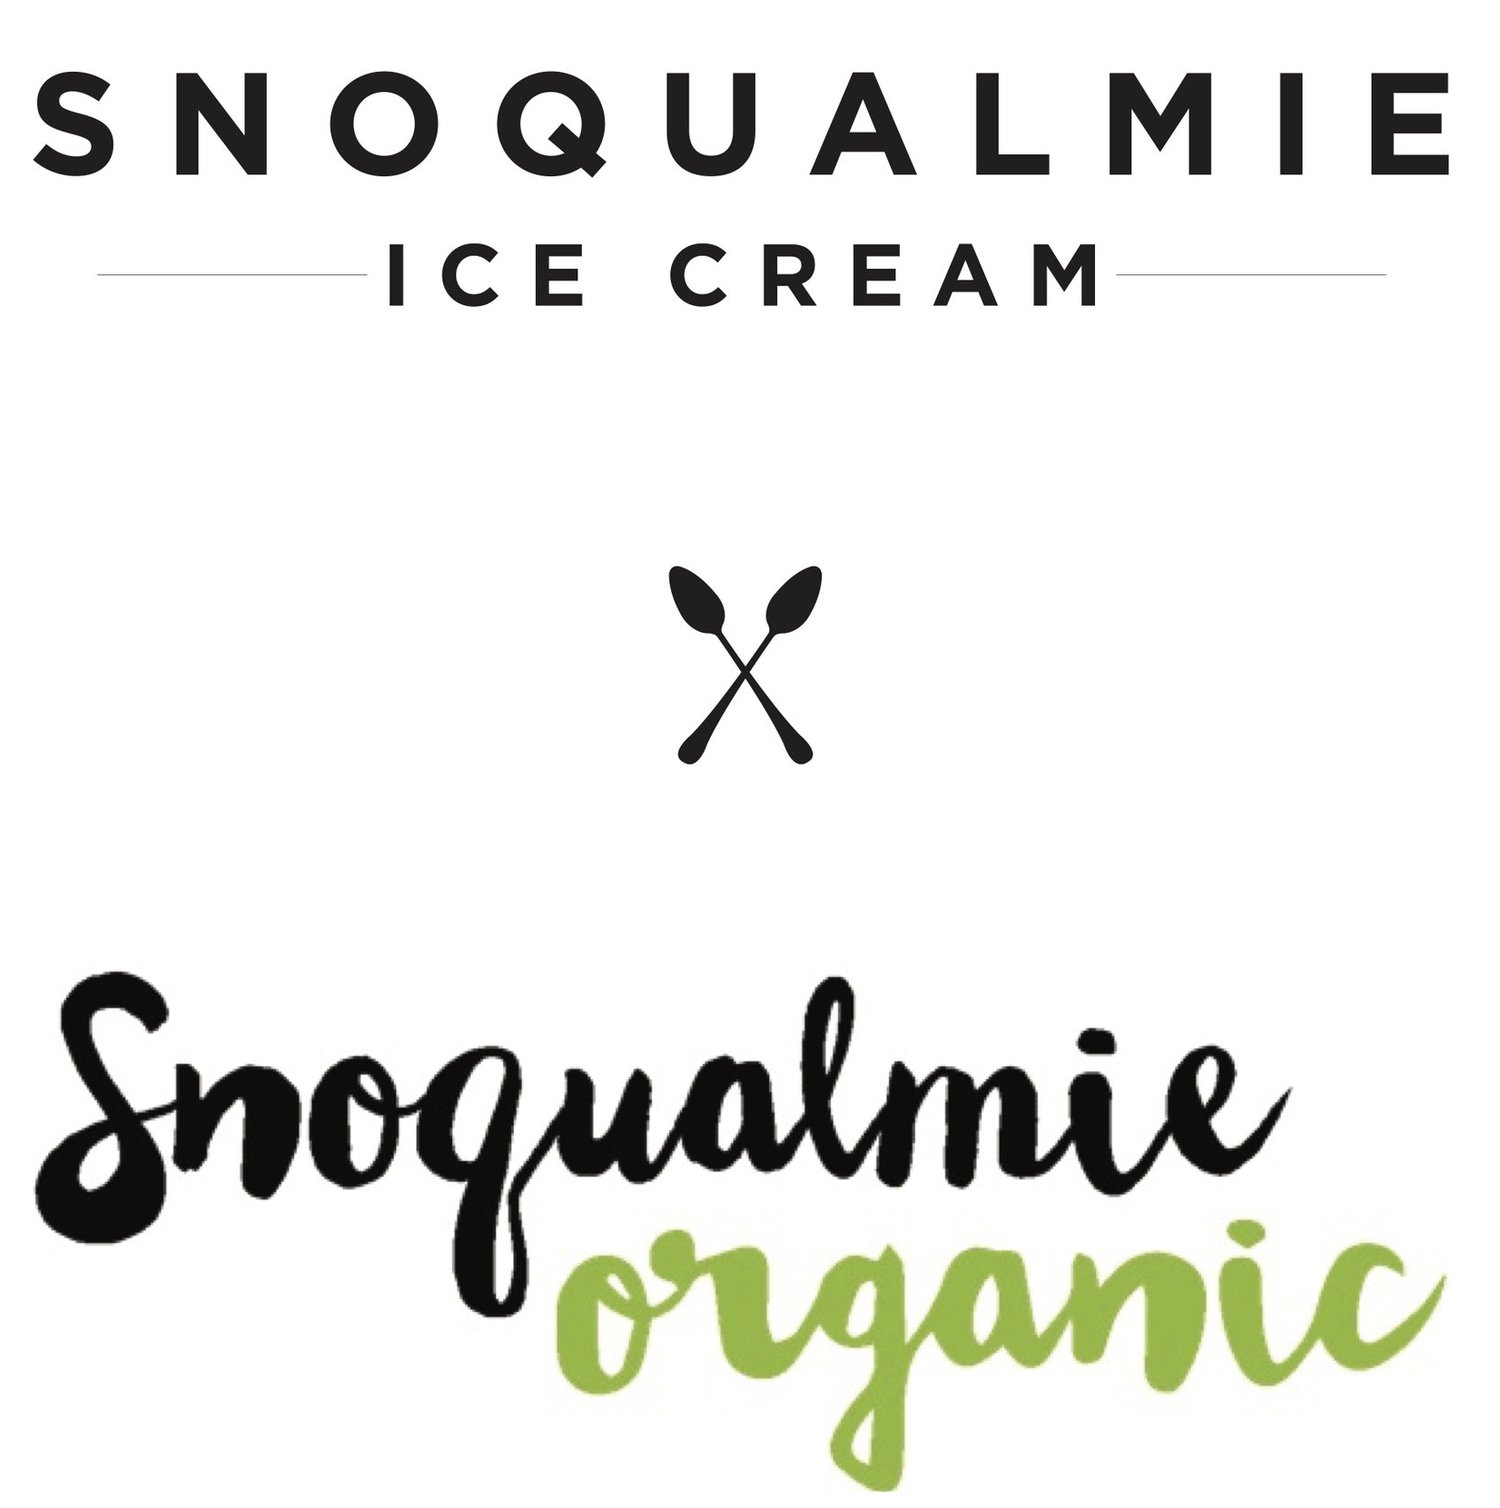 Snoqualmie Ice Cream + Snoqualmie Organic Ice Cream